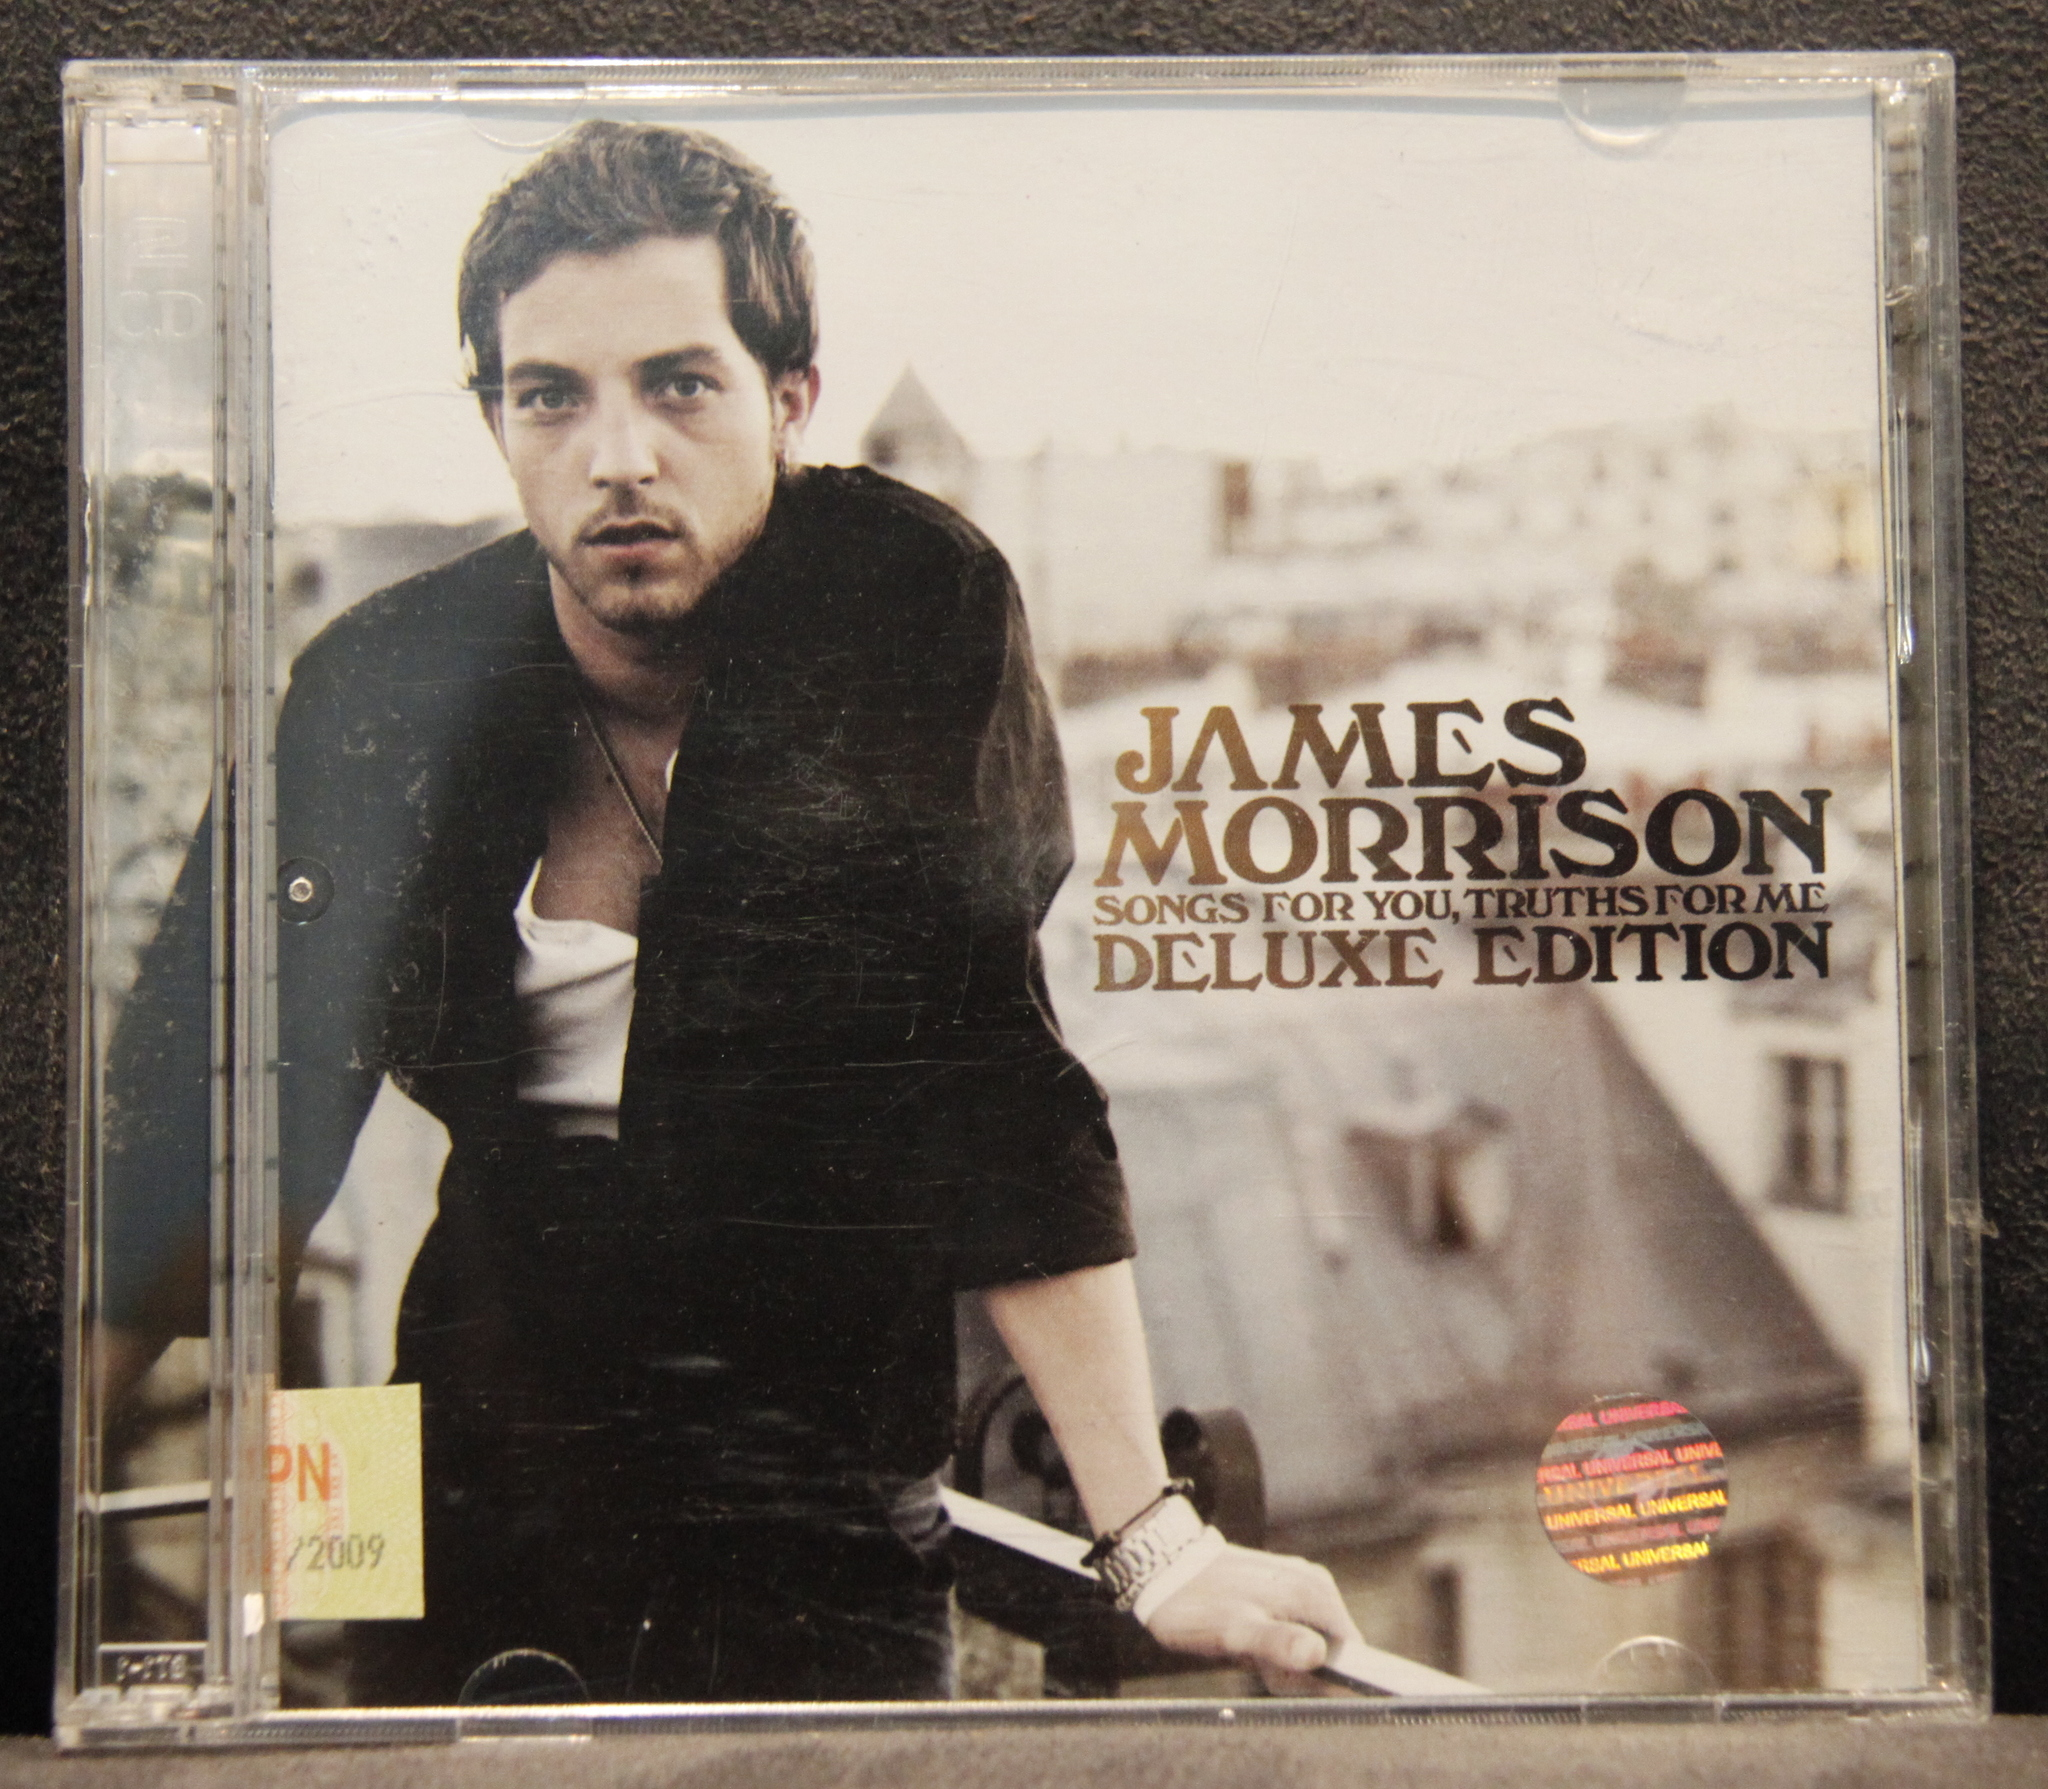 harga CD Album James Morrison - Songs For You, Truths For Me (2 CD) Tokopedia.com